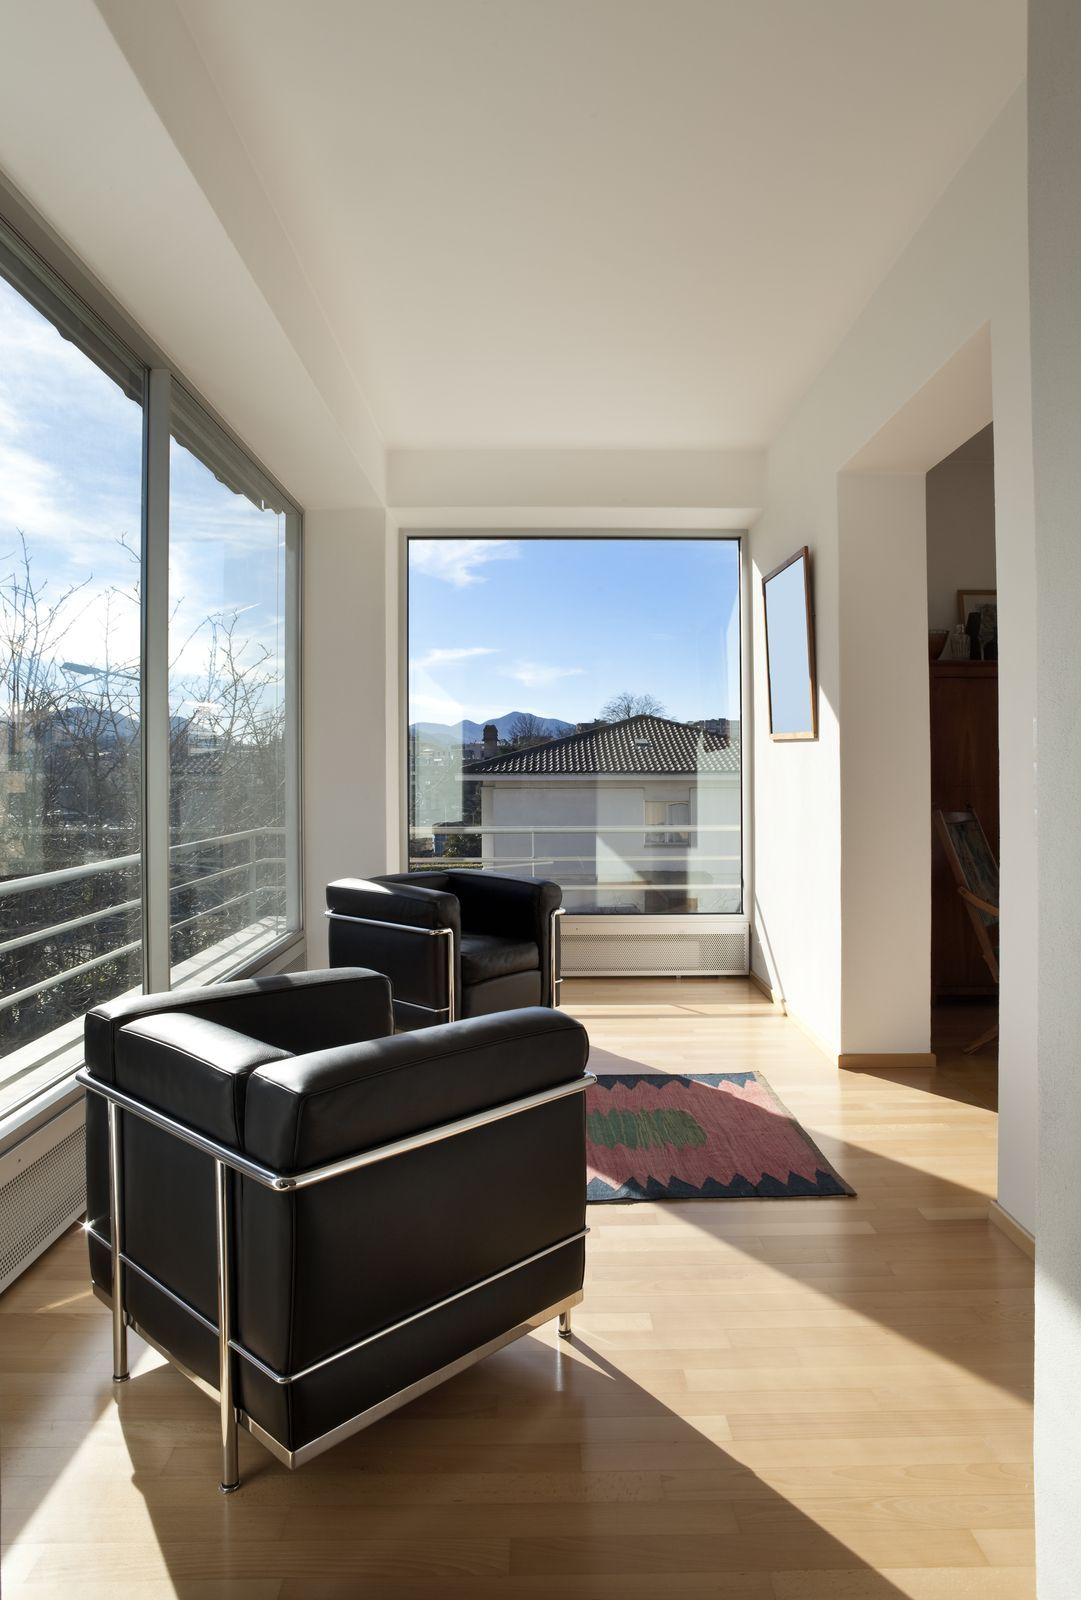 Lots of natural light with panoramic windows